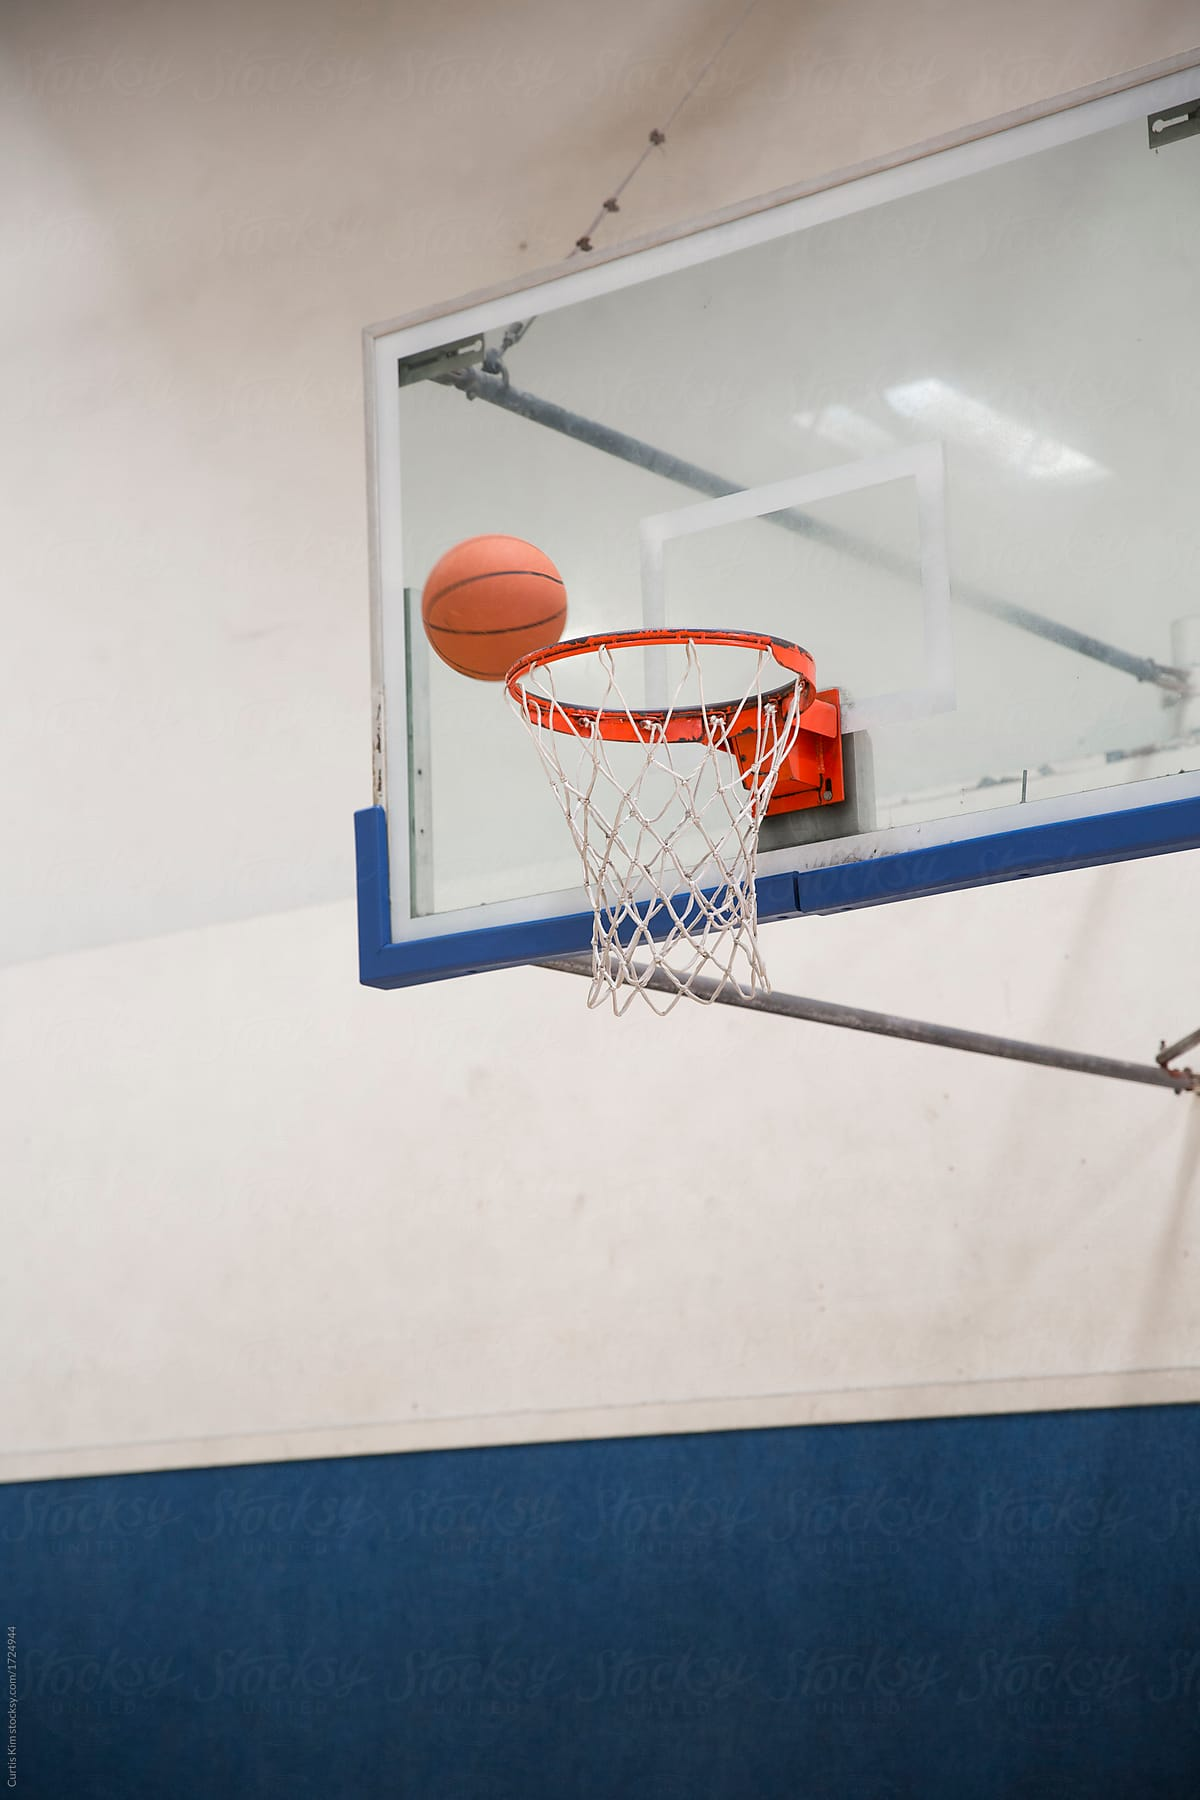 basketball going into basket in an indoor gym stocksy united